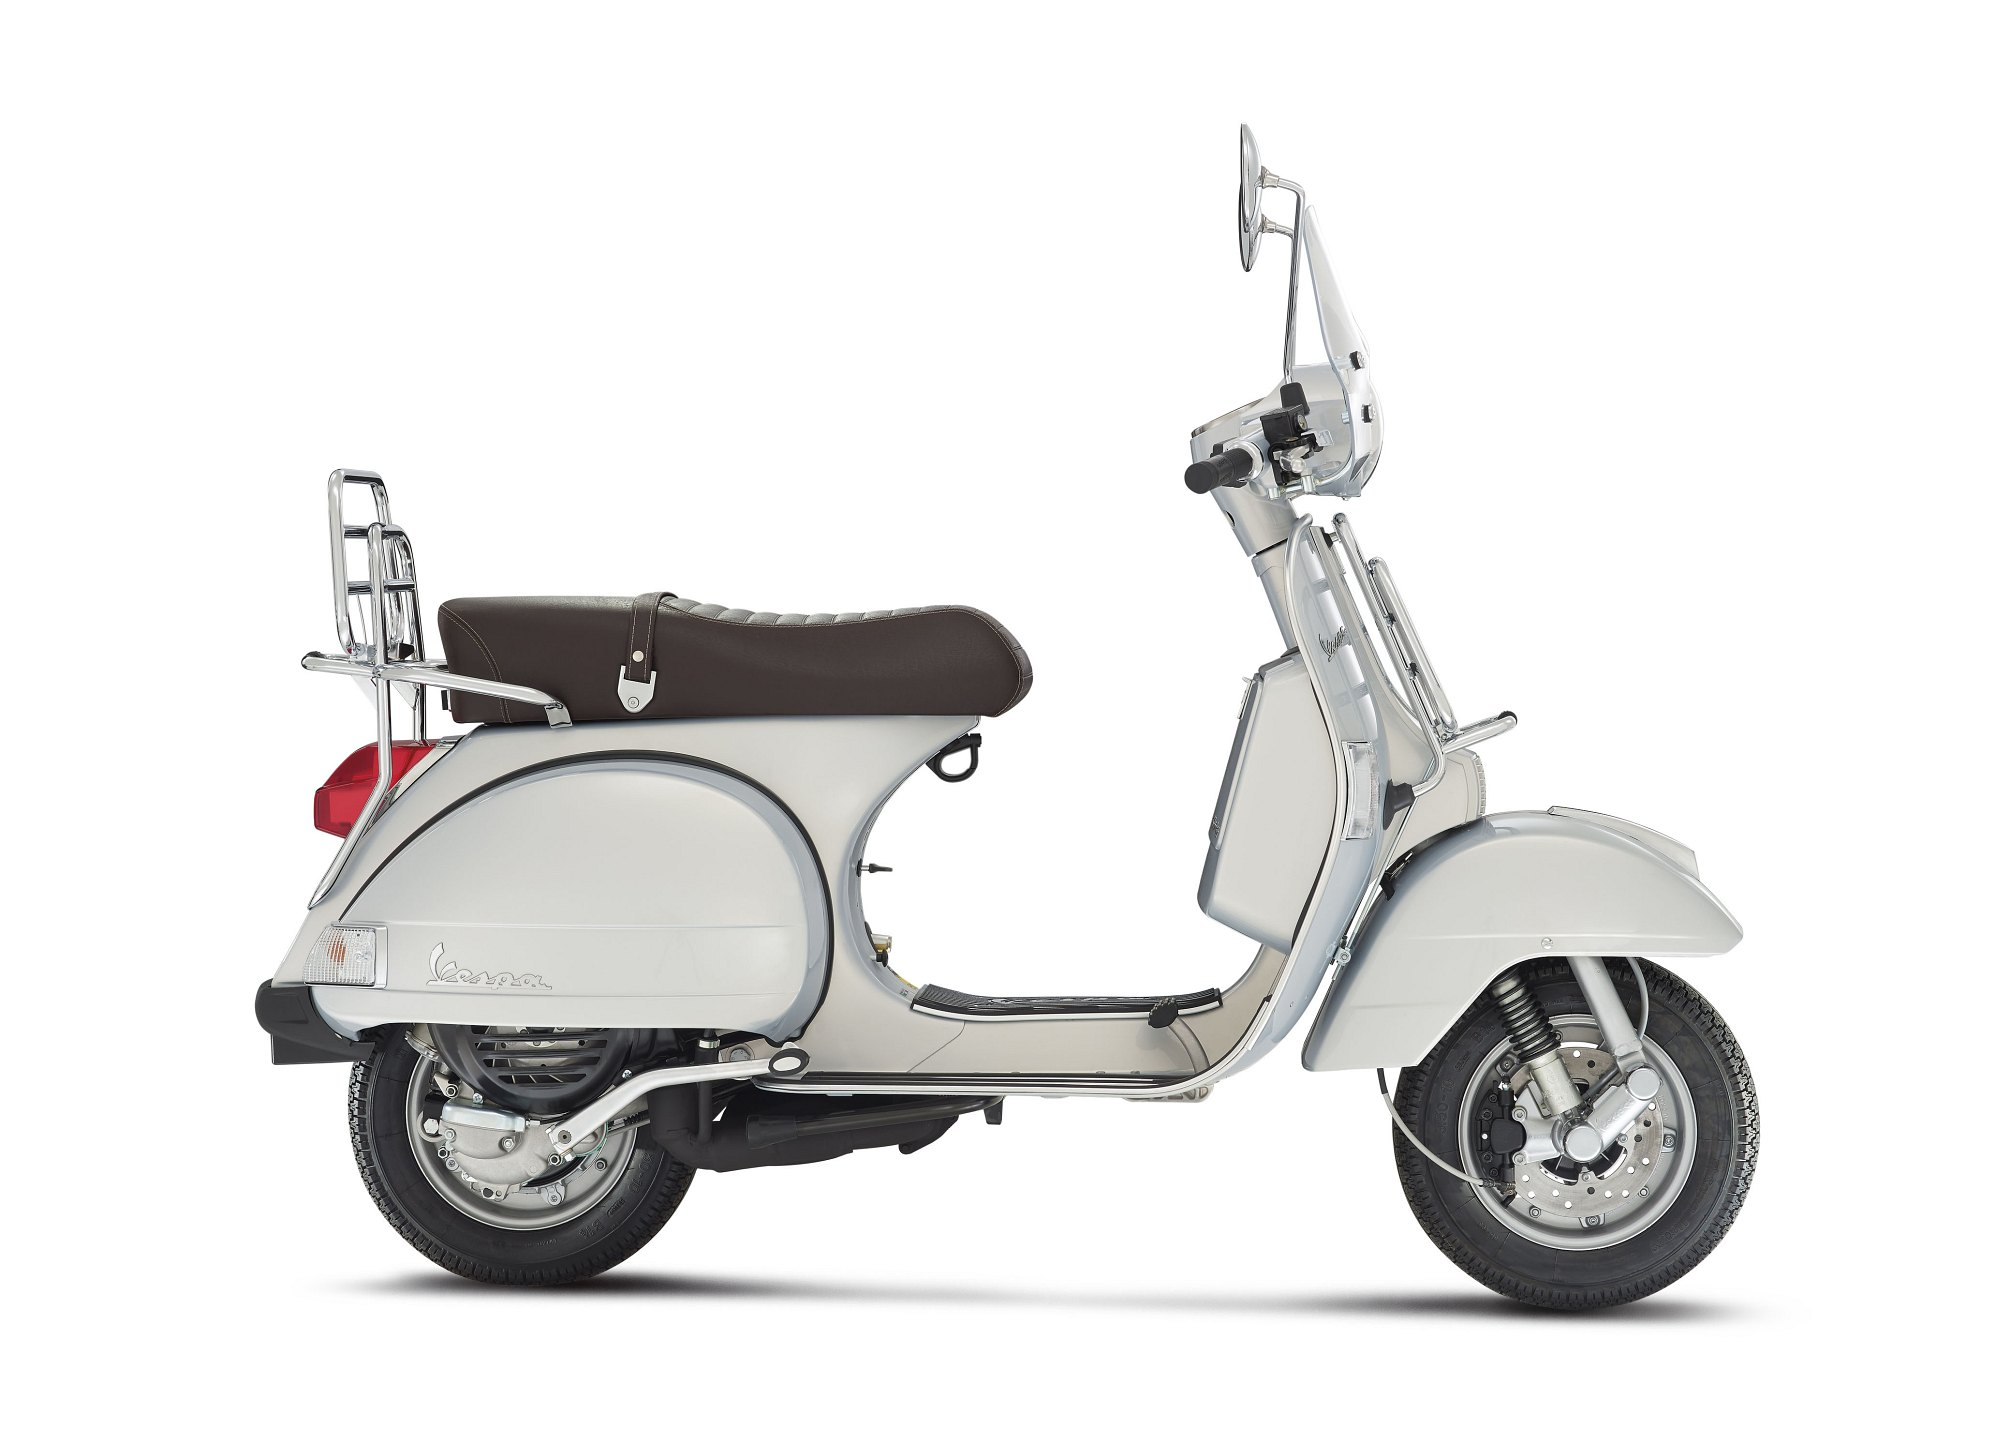 vespa px 125 touring bilder und technische daten. Black Bedroom Furniture Sets. Home Design Ideas